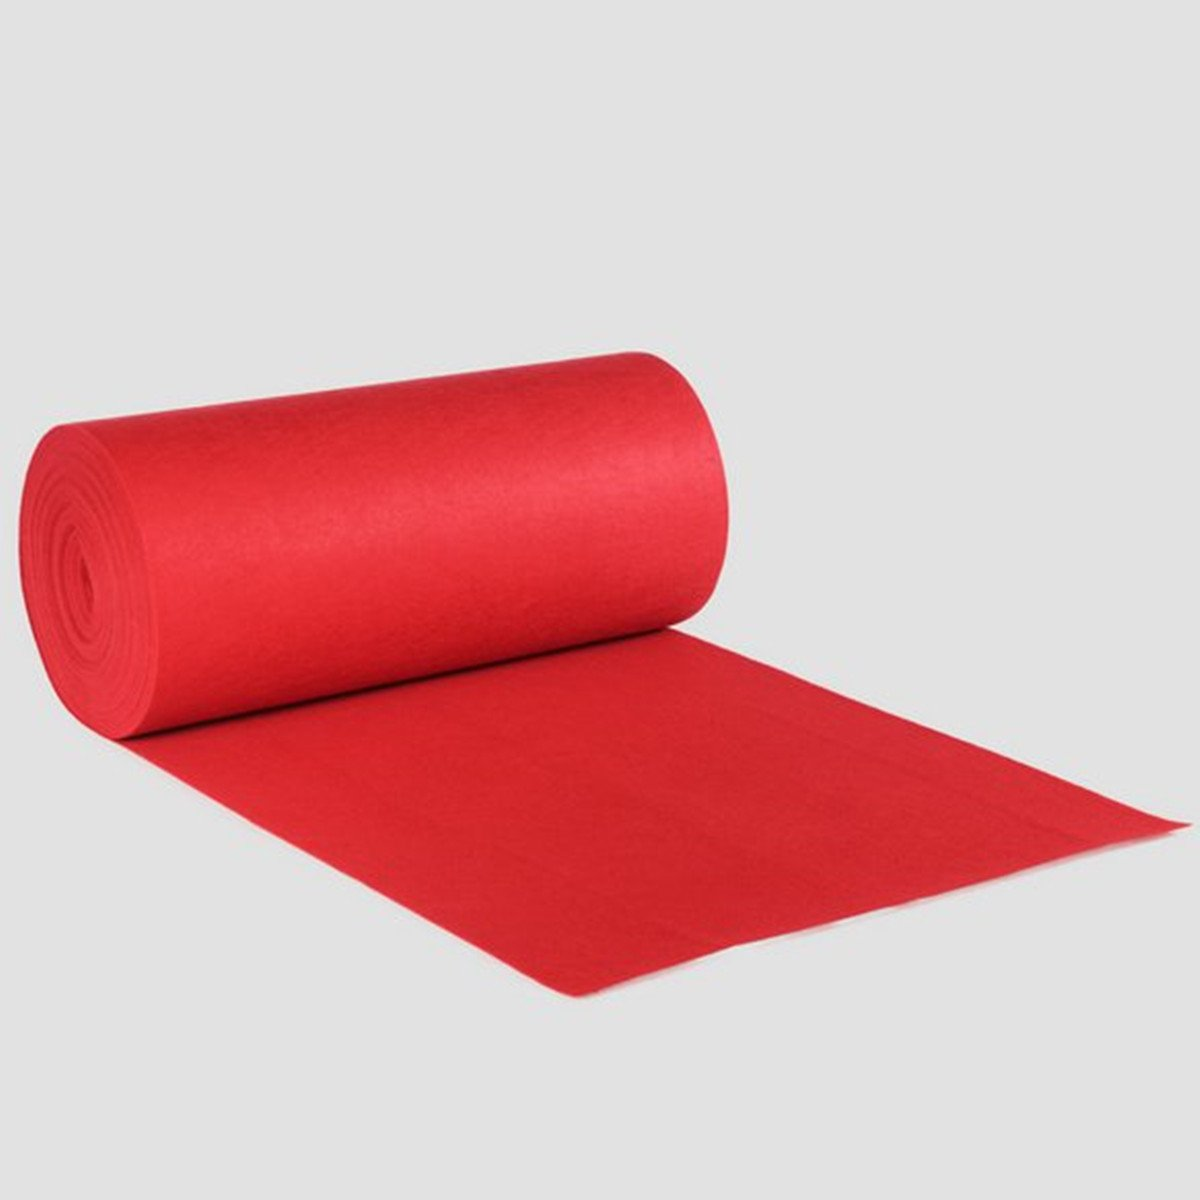 KOOCO Wedding Aisle Floor Runner Carpet Polyester Large Red Carpet Rug Hollywood Awards Events Wedding Party Events Decoration 10M/20M, Red, 10M